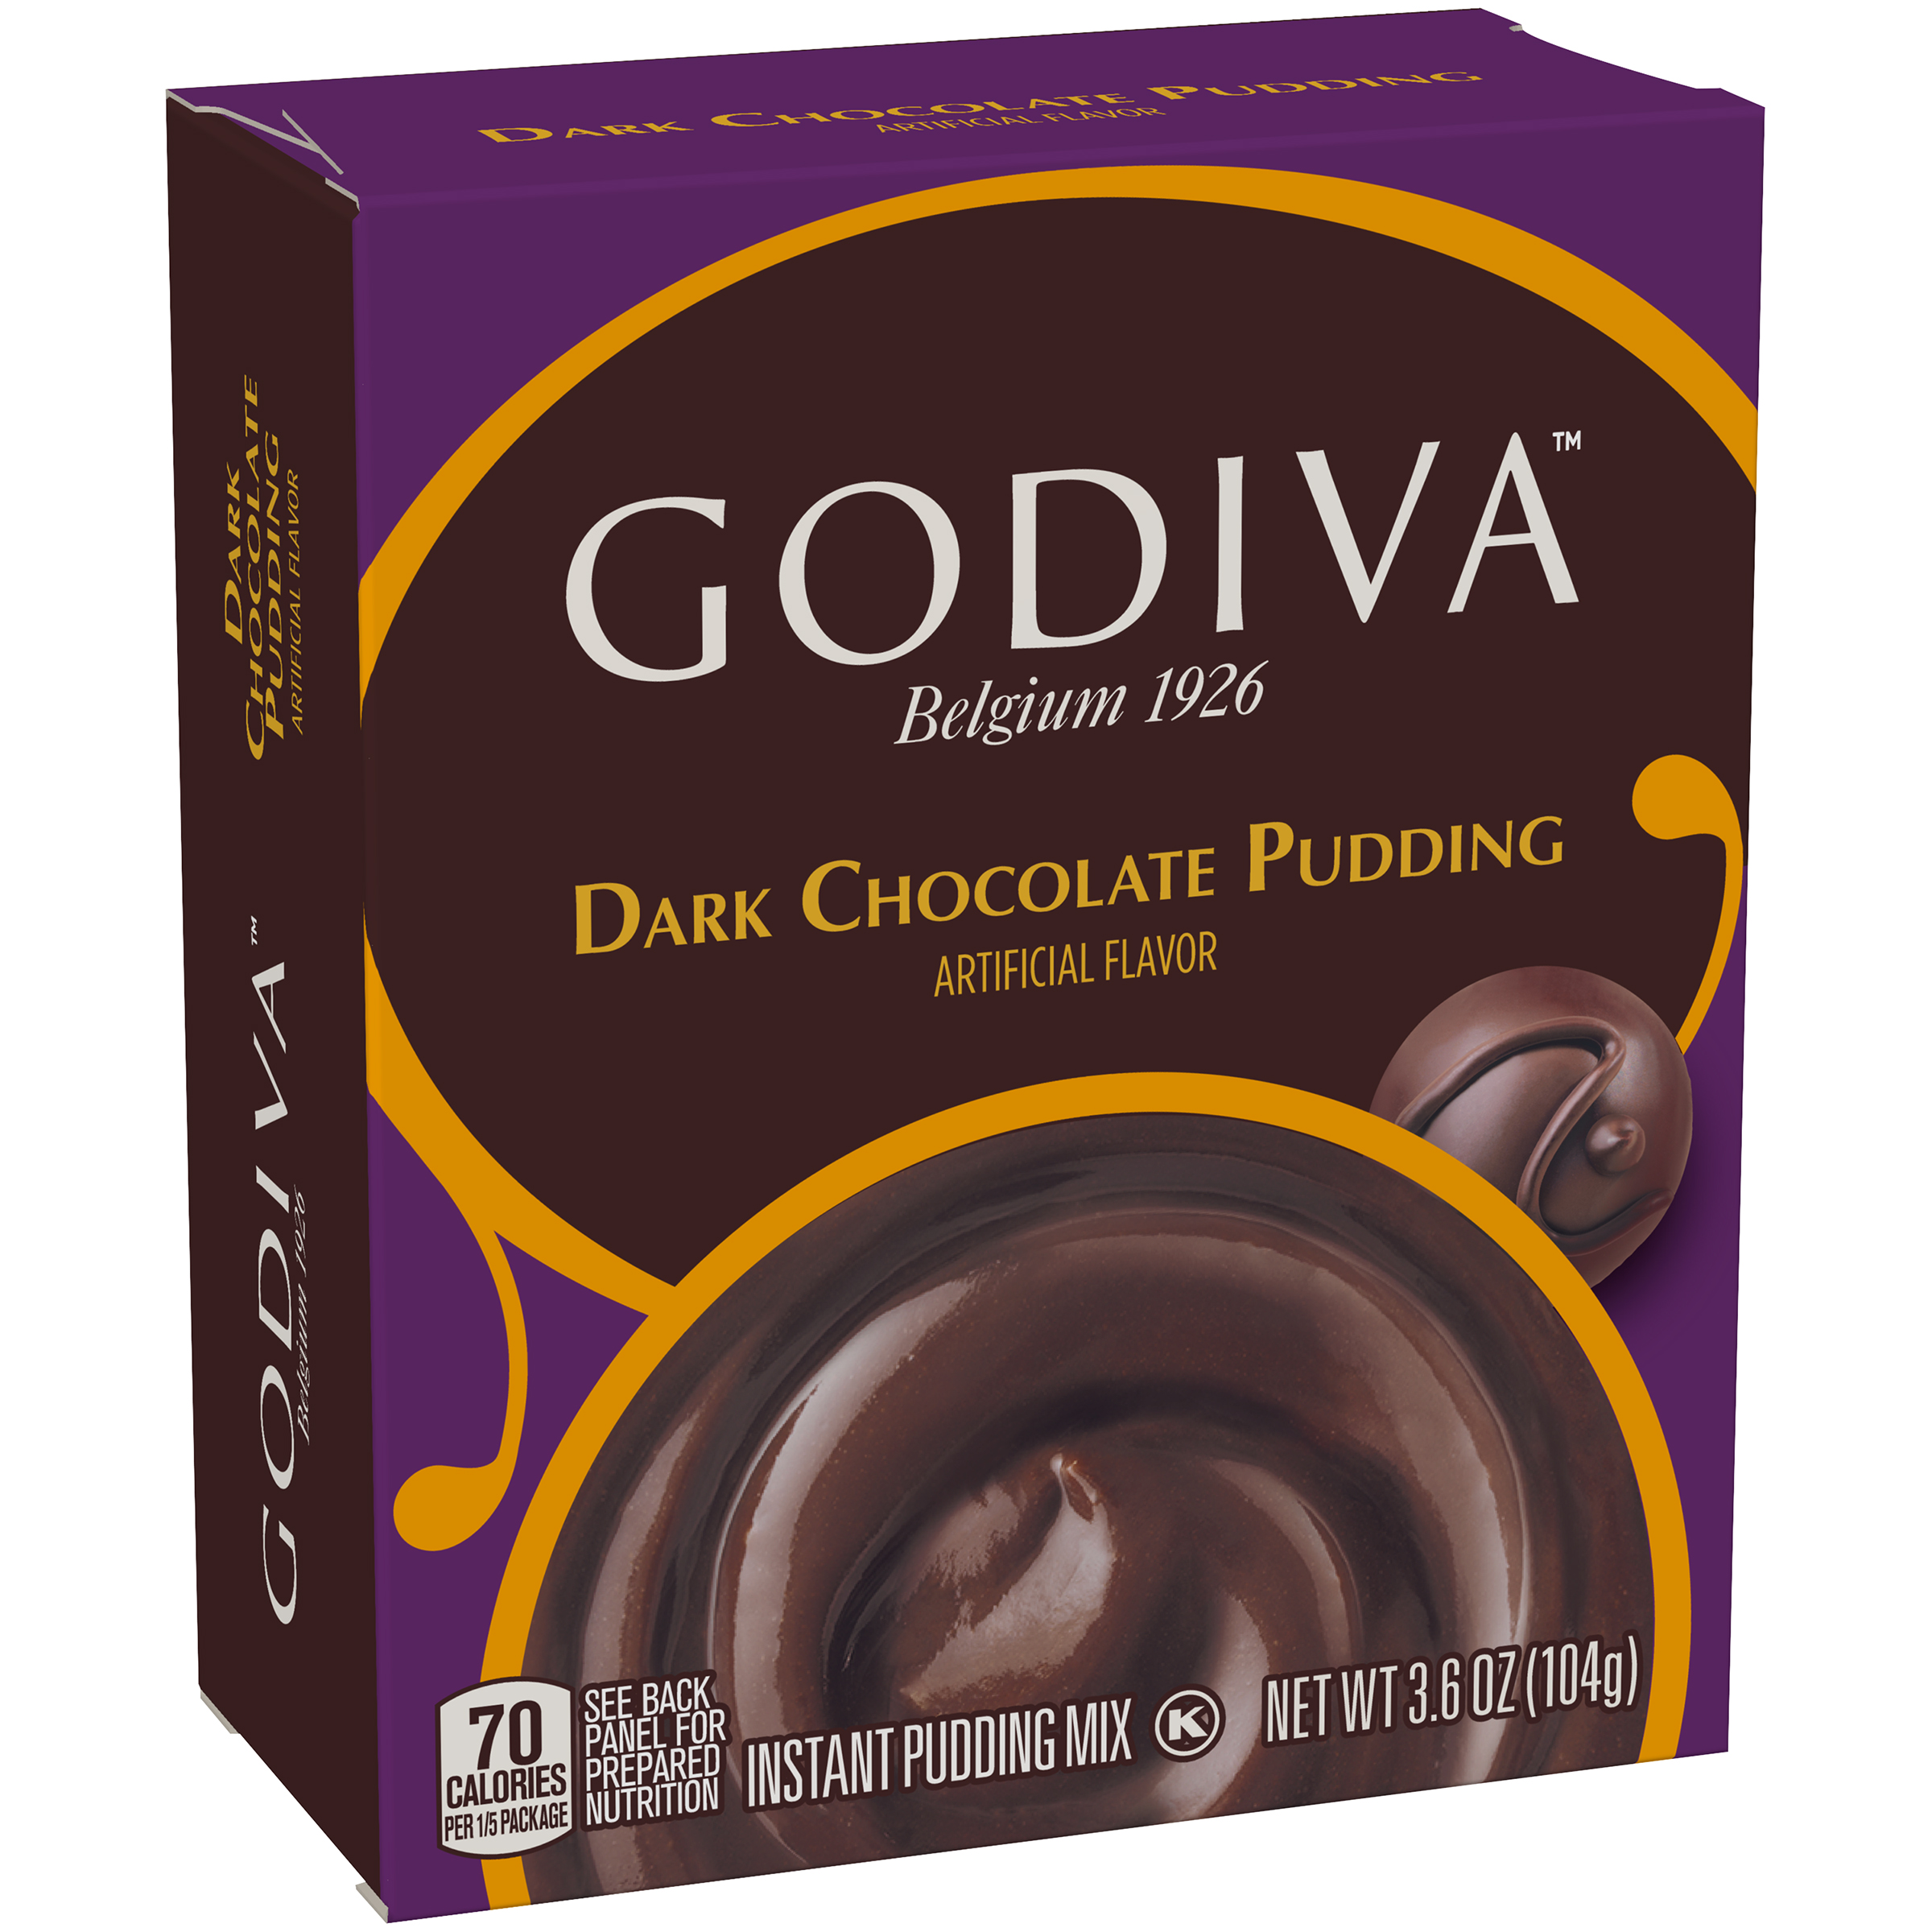 Godiva Dark Chocolate Instant Pudding Mix 3.6 oz. Box